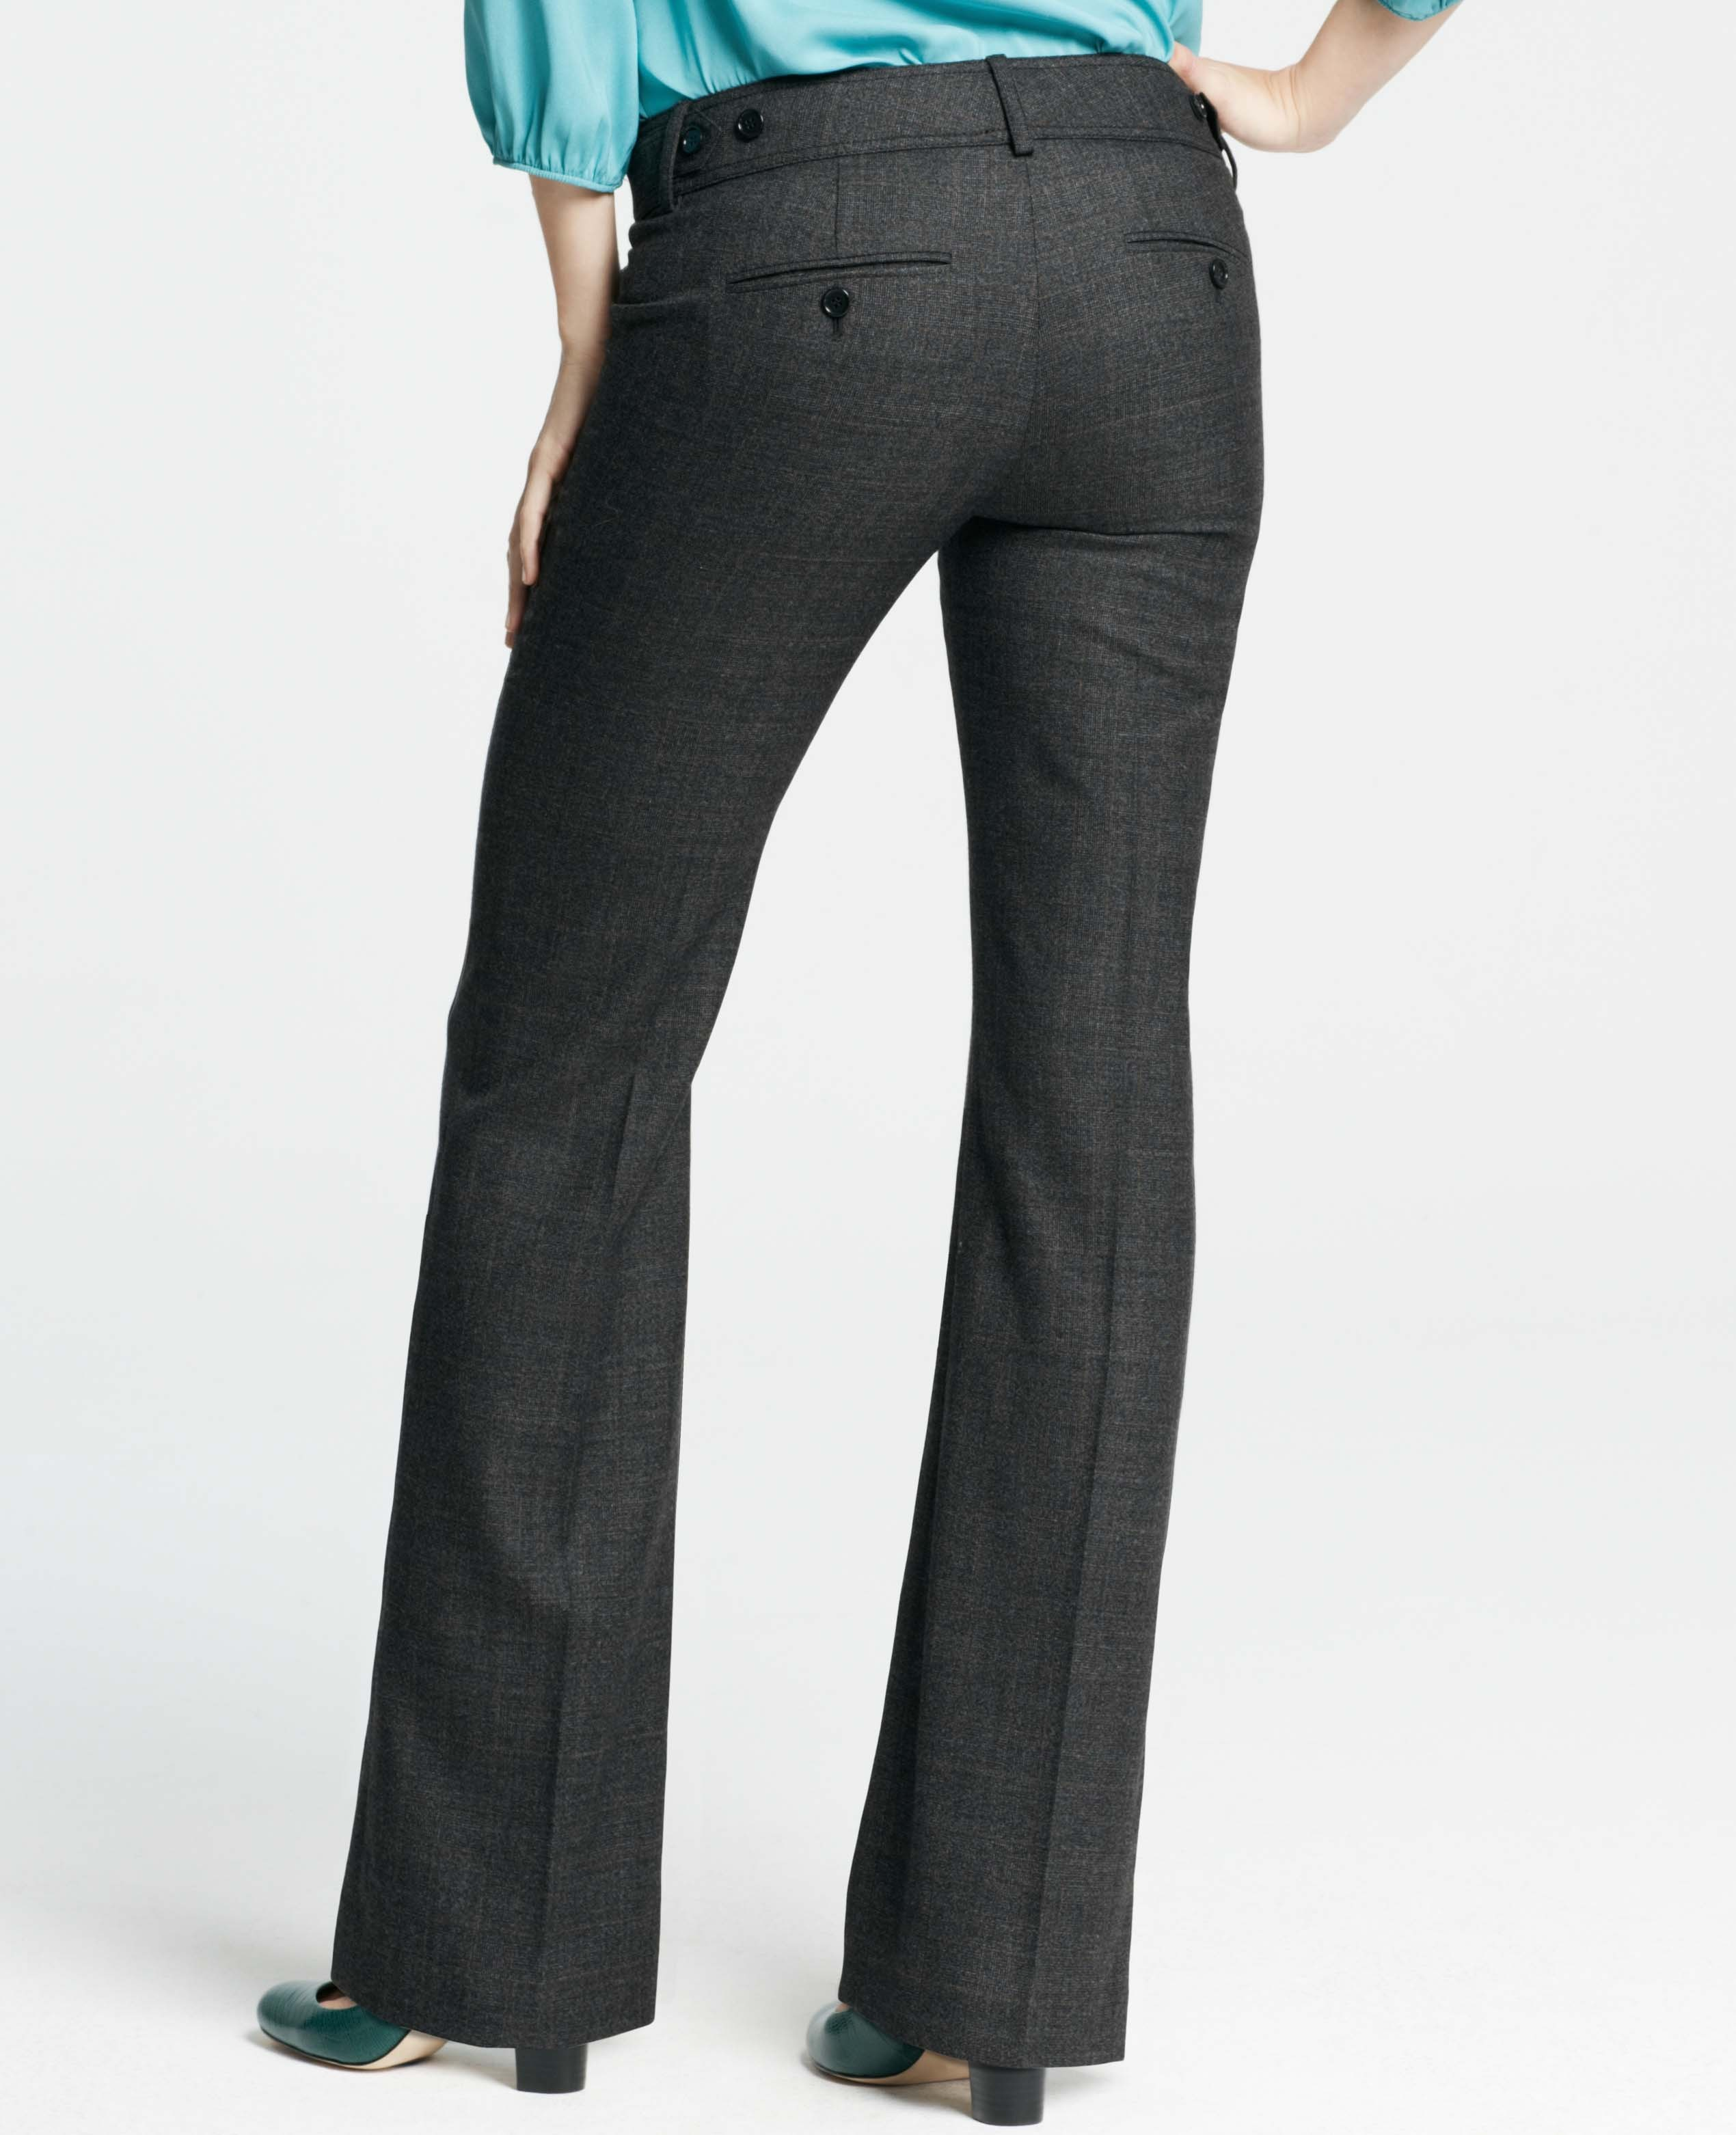 glen plaid cropped trousers - Grey Taylor W67sk